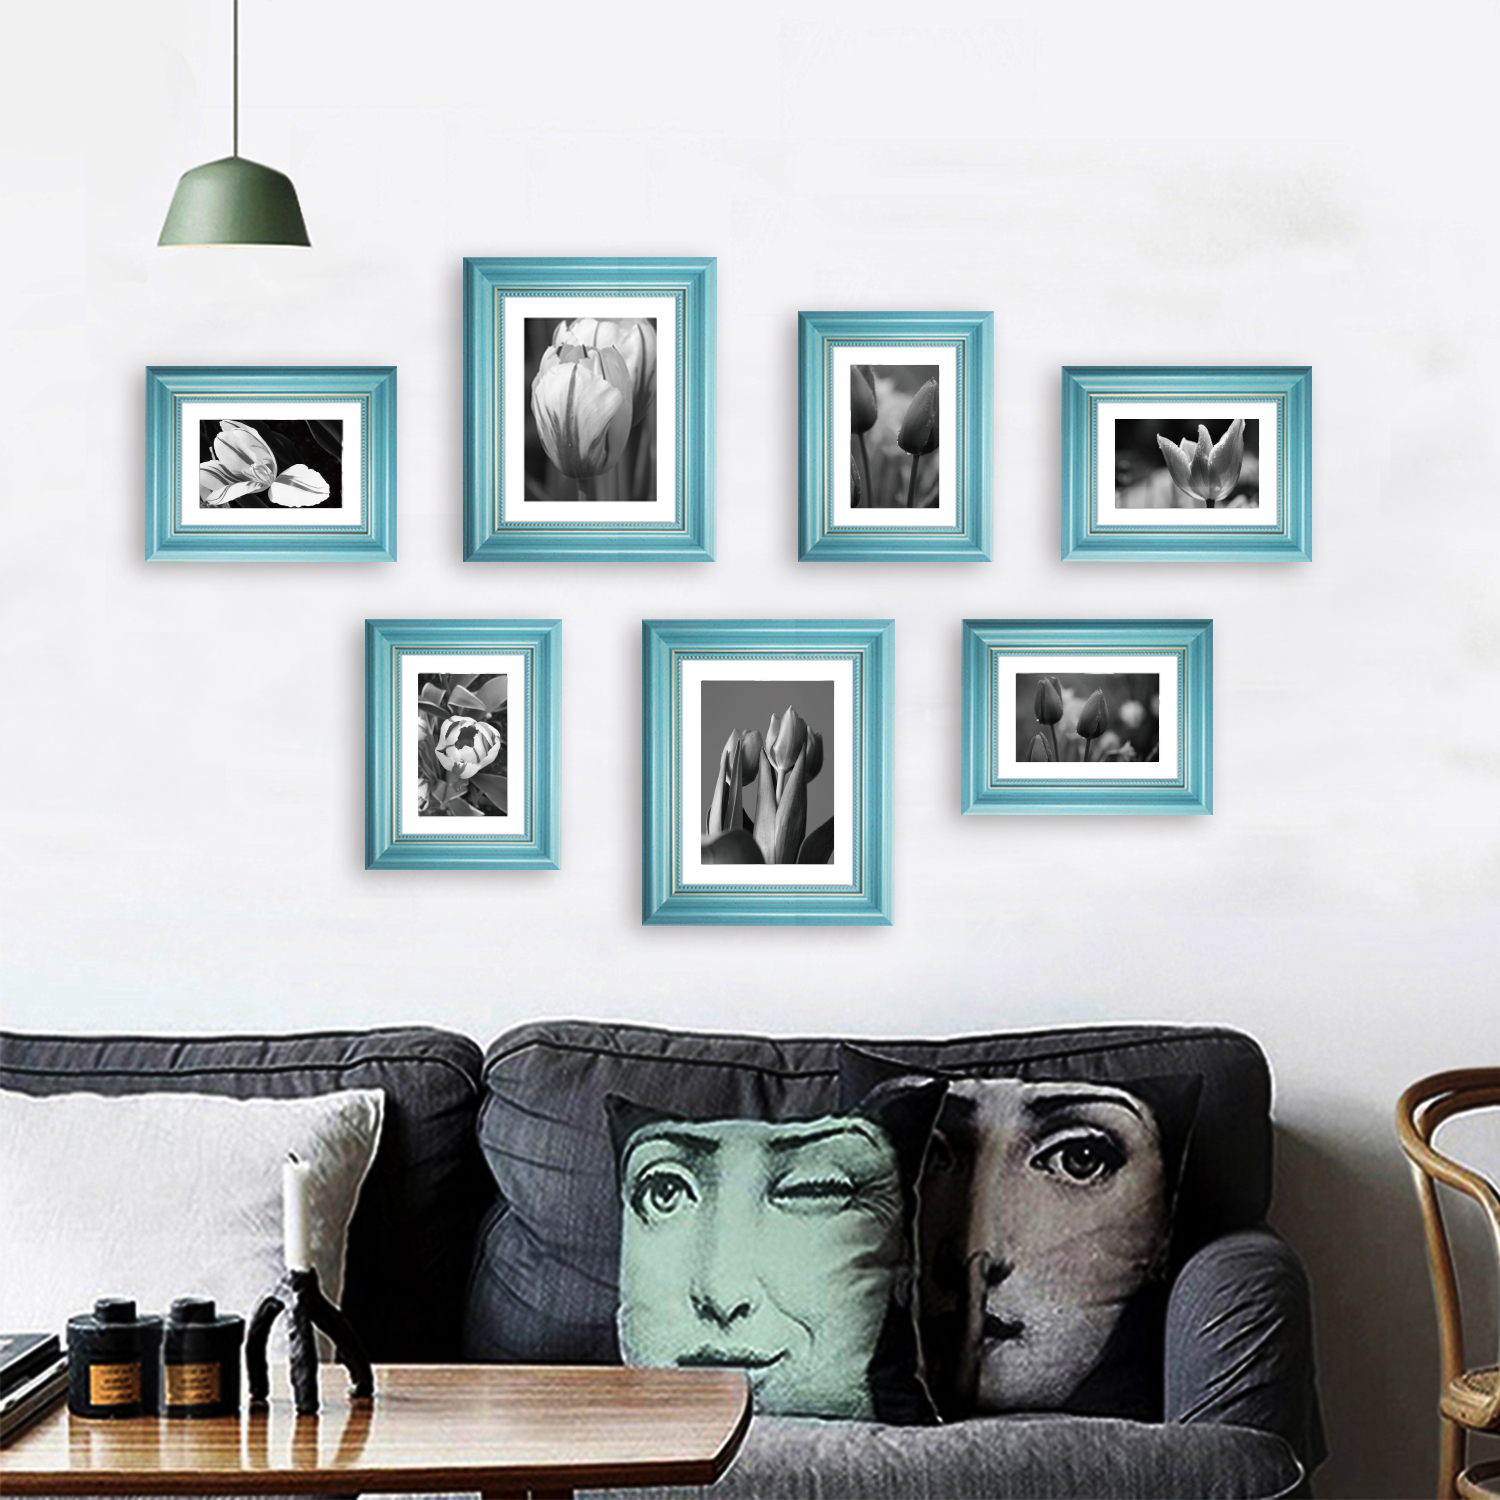 7 pack photo frame wall gallery kit Cheap picture frames Collage Set of 7